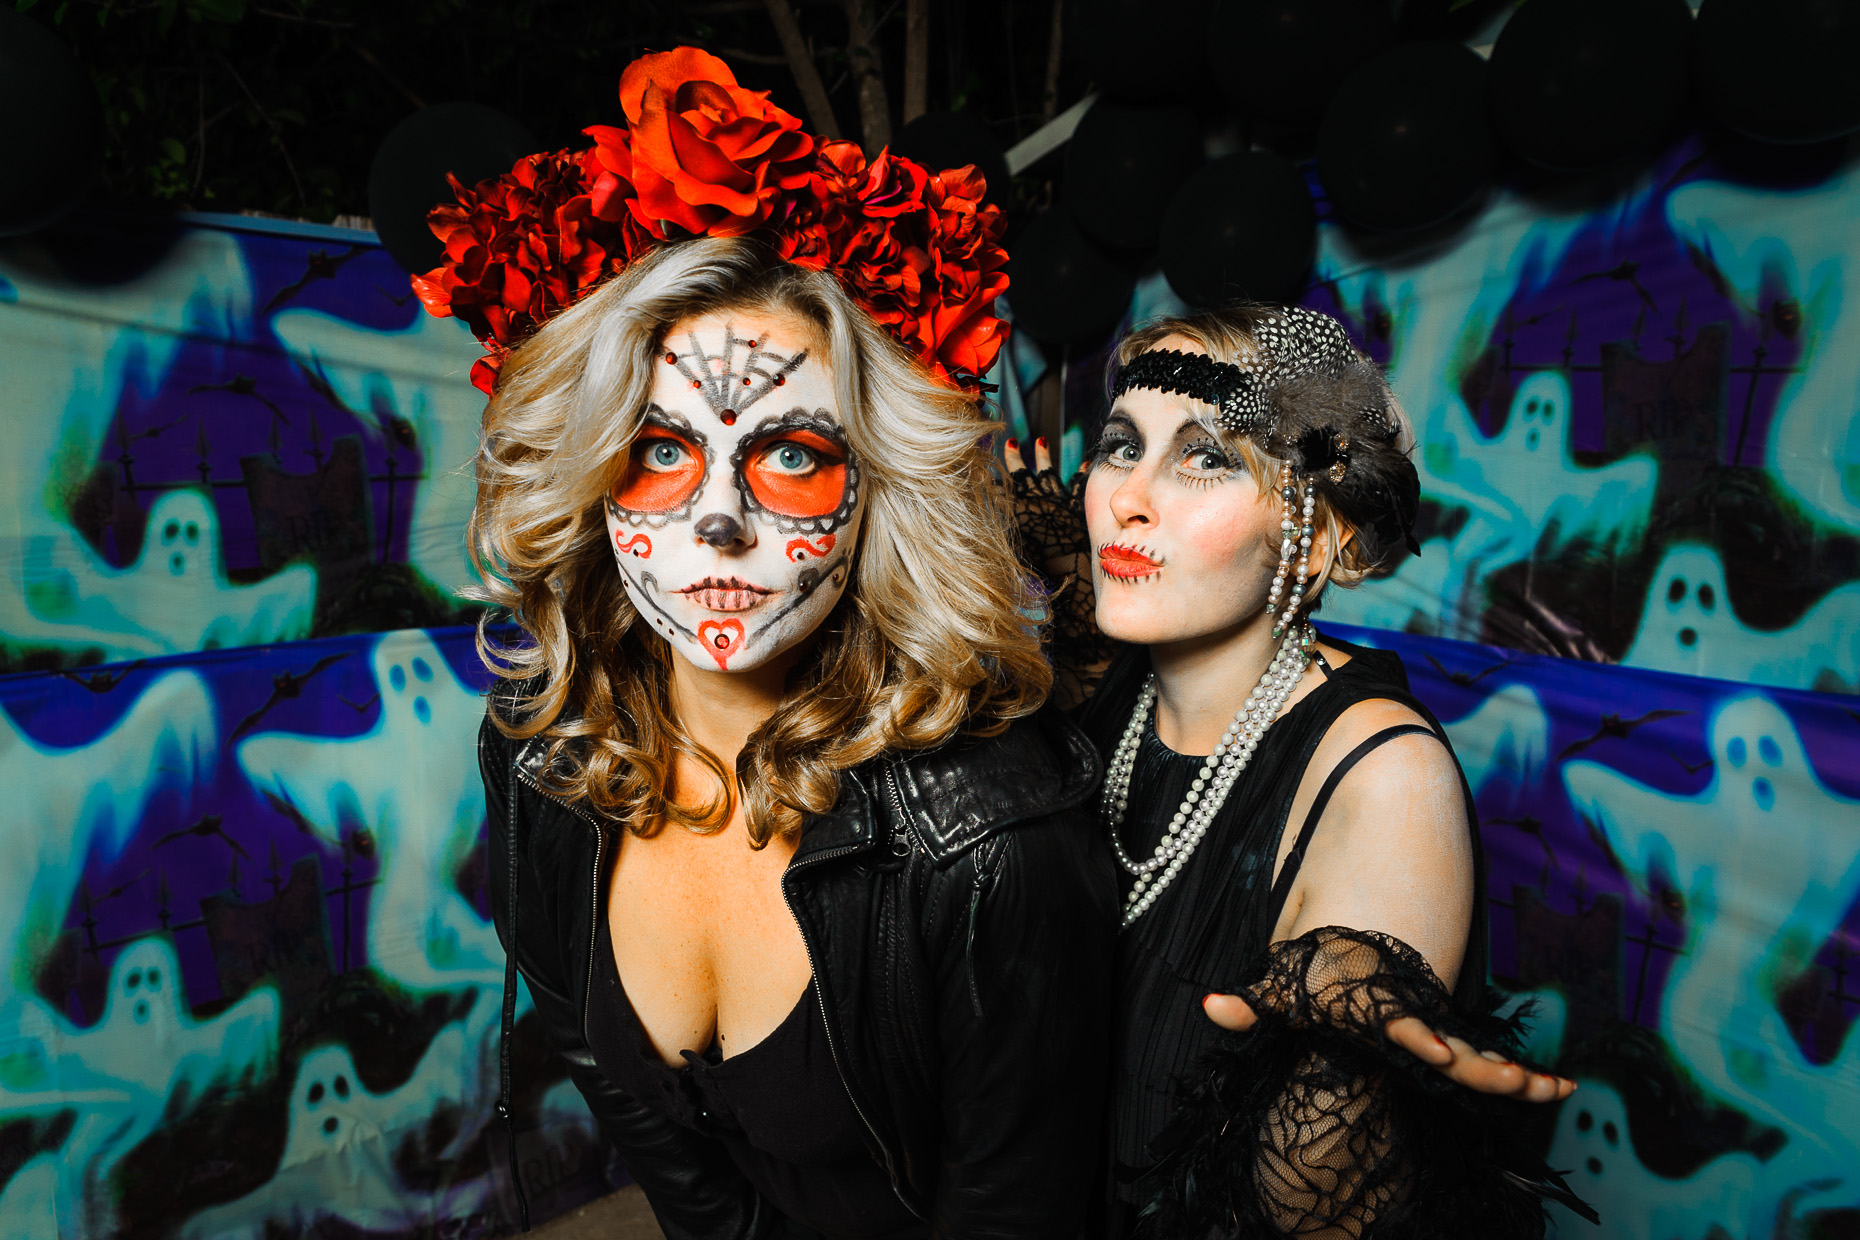 Austin-Event-Commercial-Photographer-Photobooth-Halloween-Texas.jpg